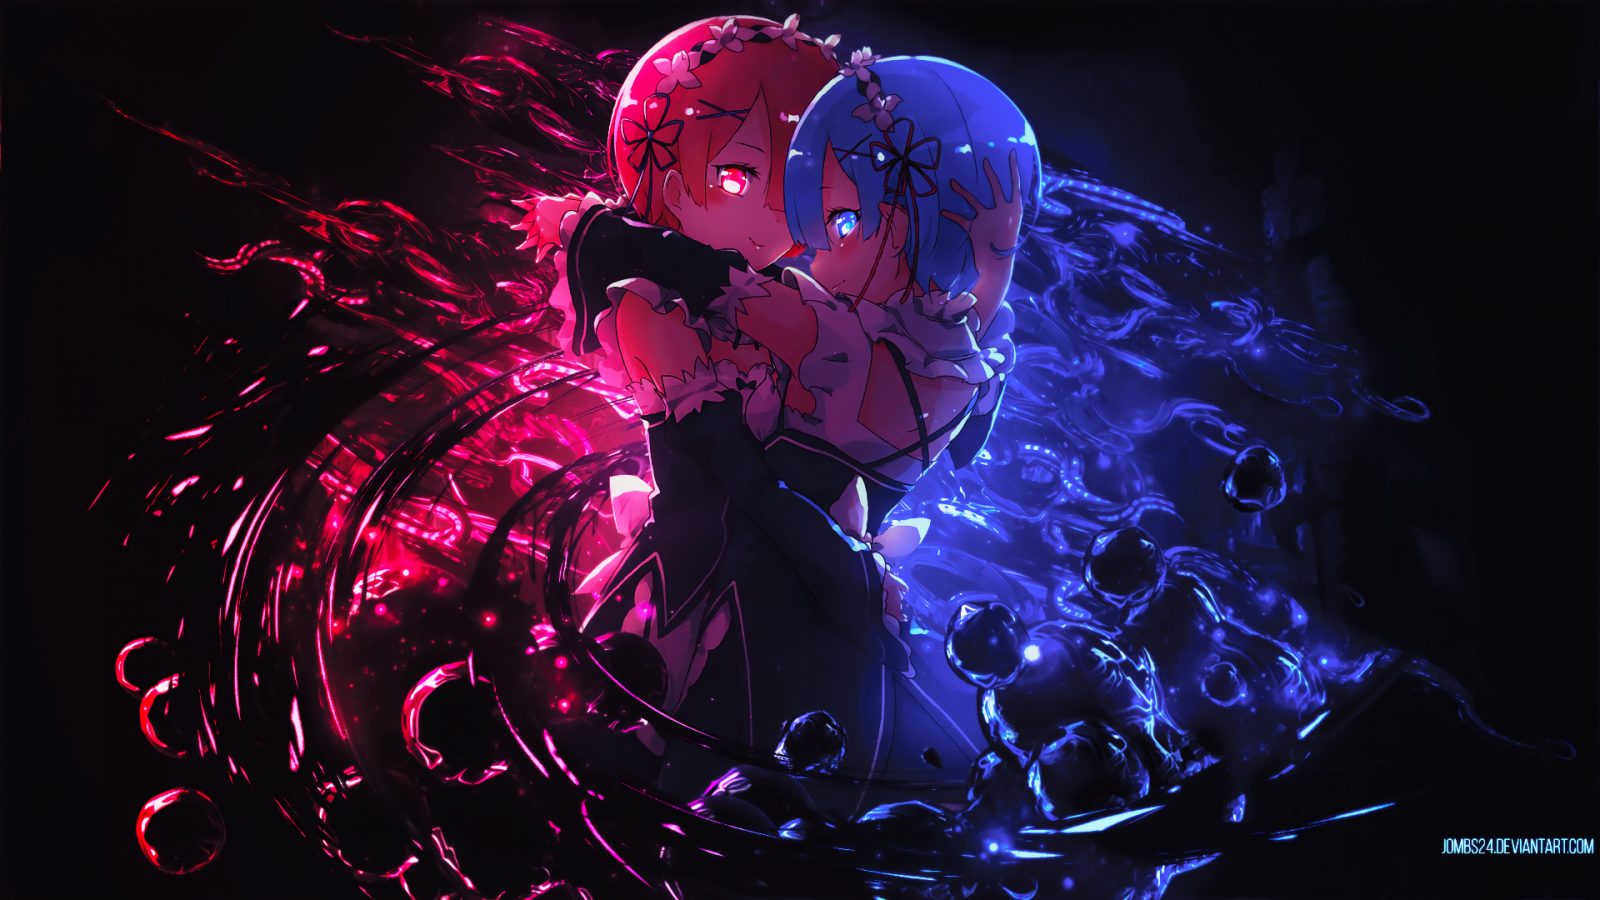 Free Download 1298 Rem Rezero Hd Wallpapers Background Images 19x1080 For Your Desktop Mobile Tablet Explore 56 Nb3 Background Nb3 Background